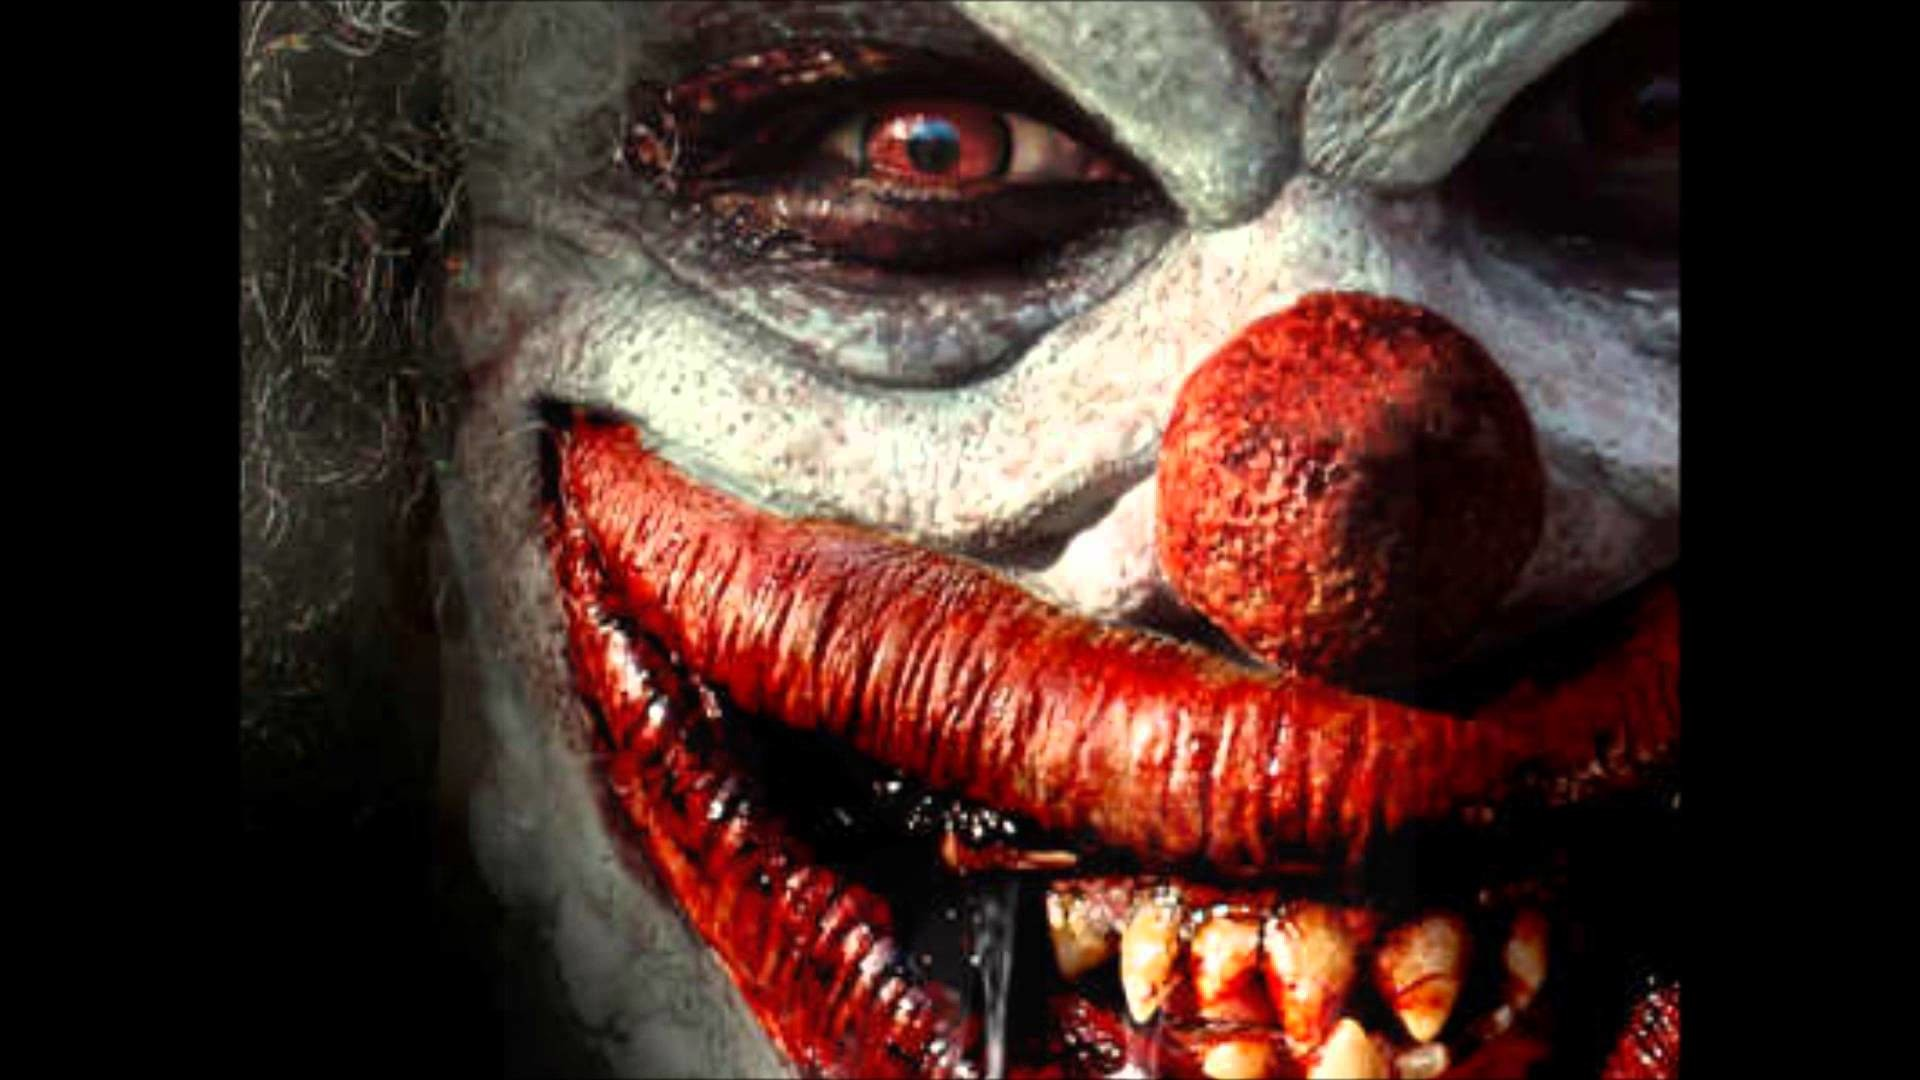 Anime Wallpapers Full Hd Scary Clown Hd Wallpaper 73 Images